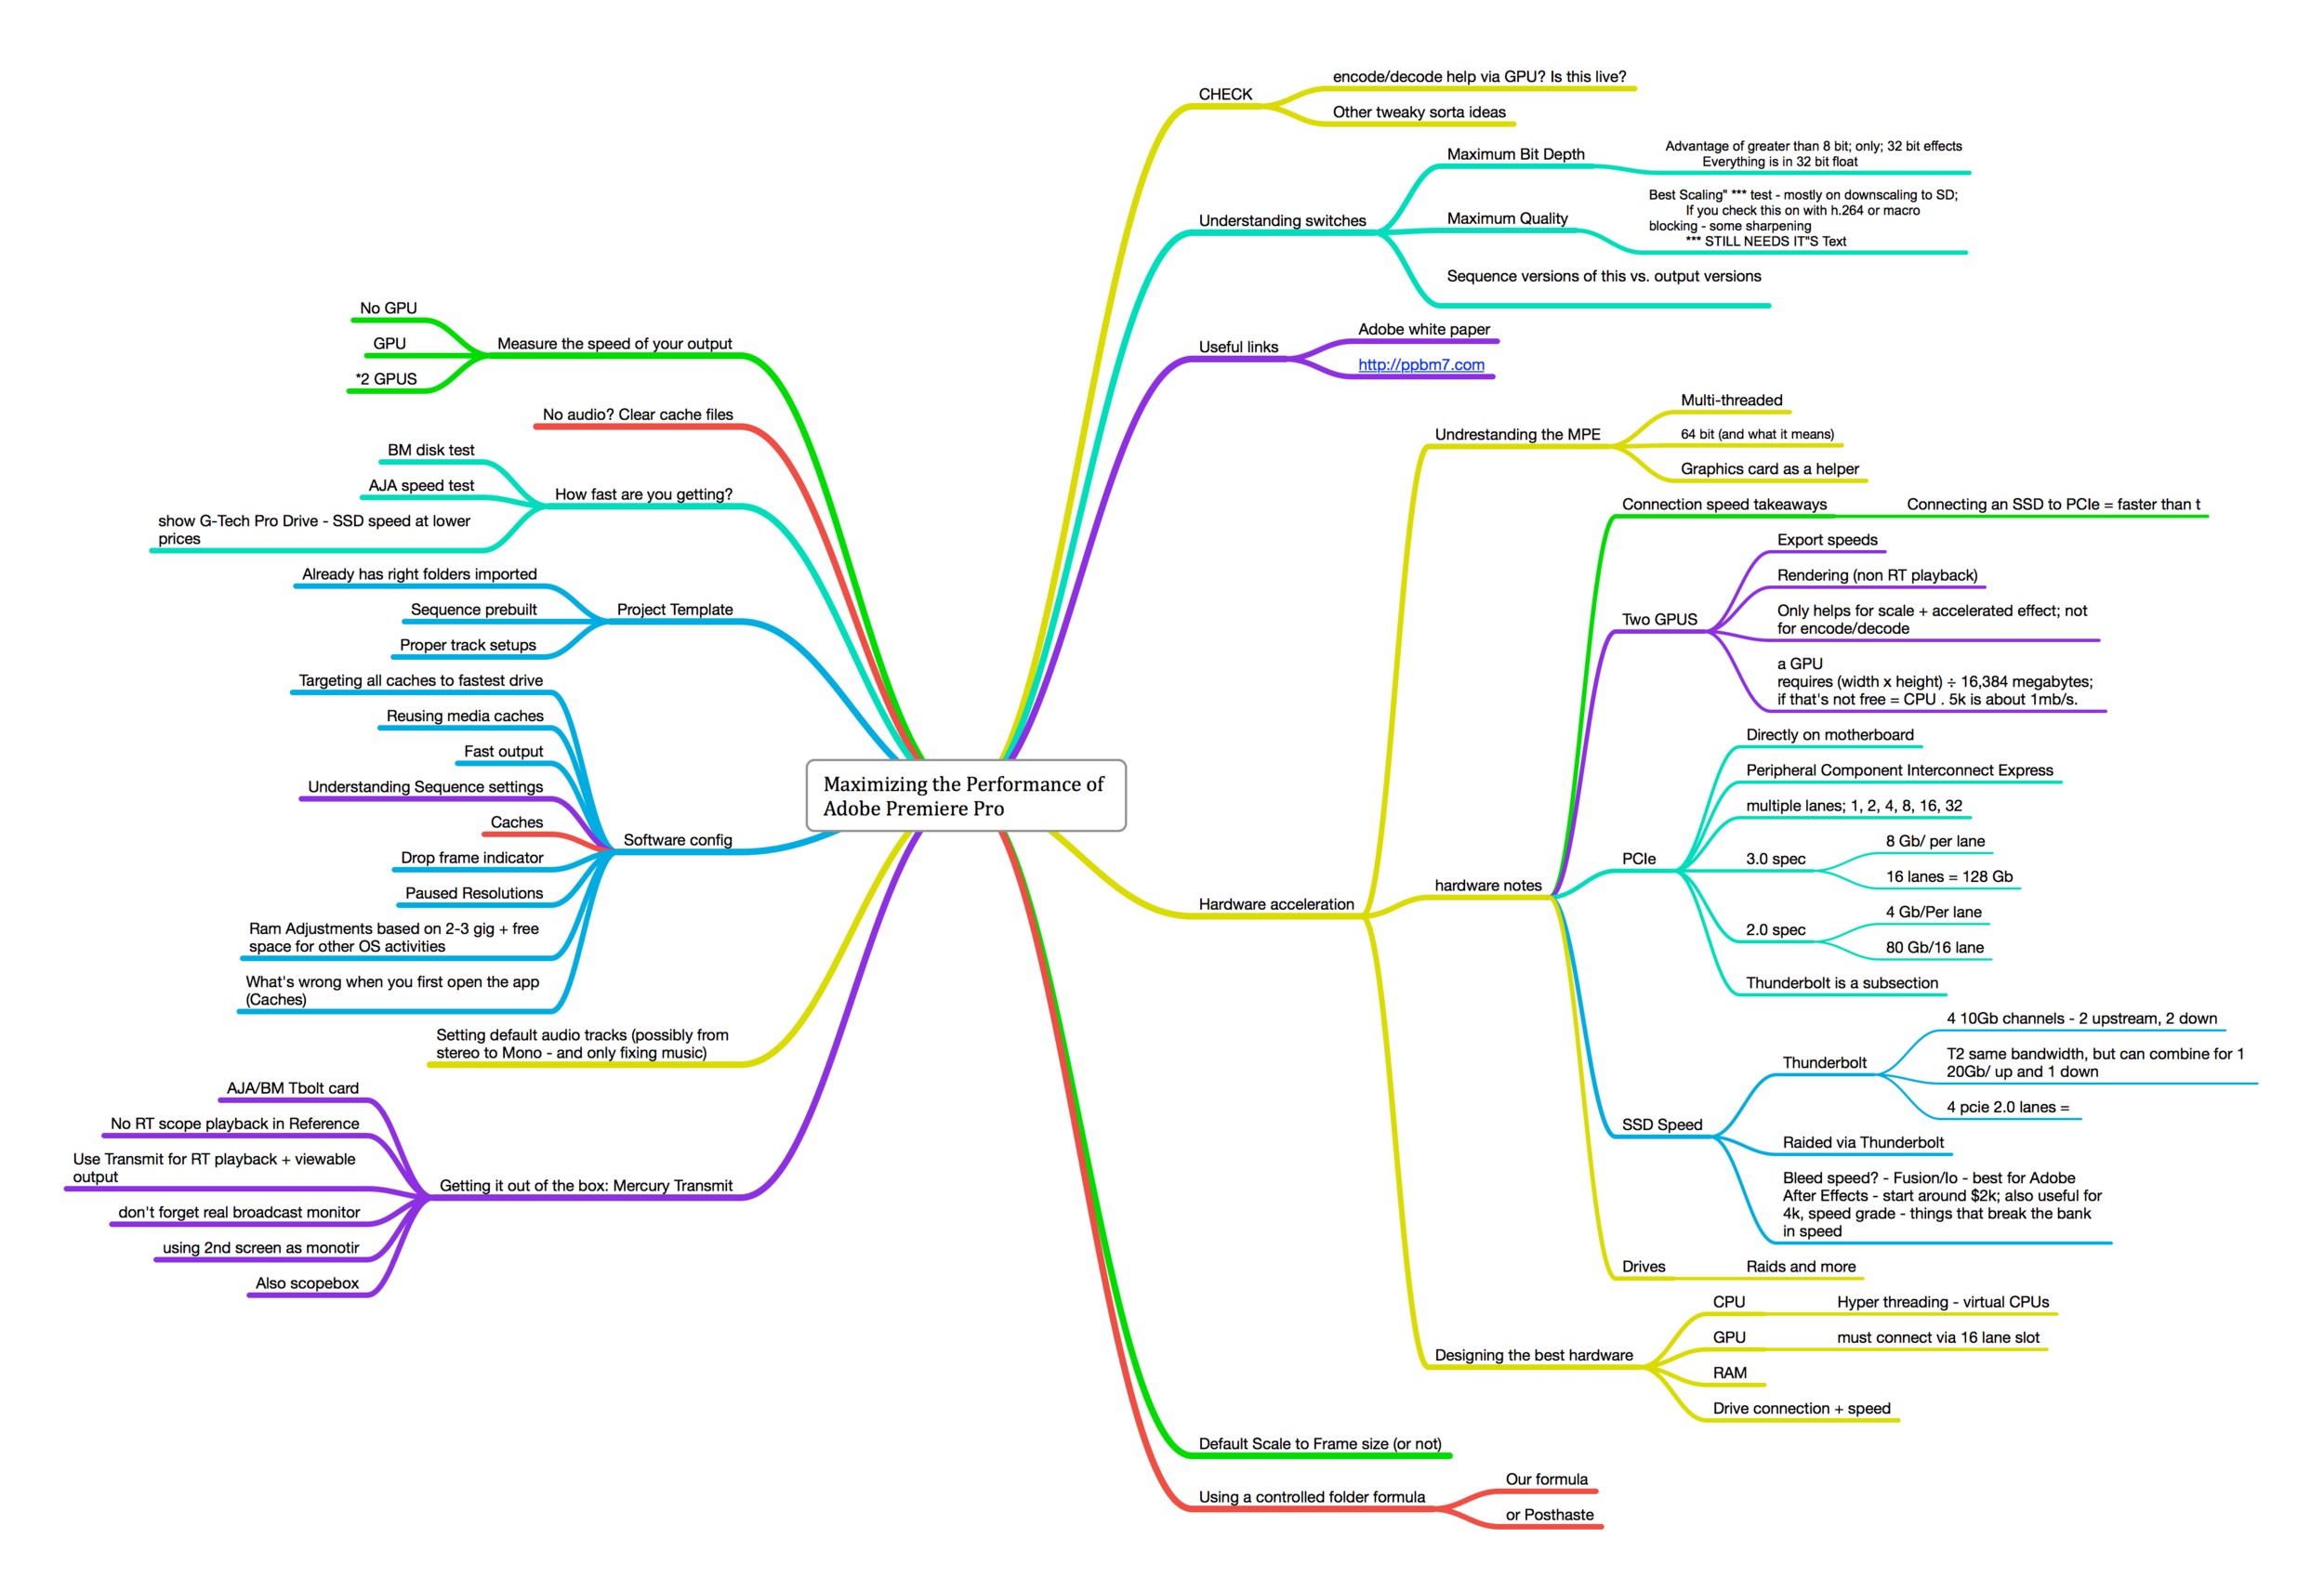 My Mindmap for this talk - just to get the ideas out of my head.